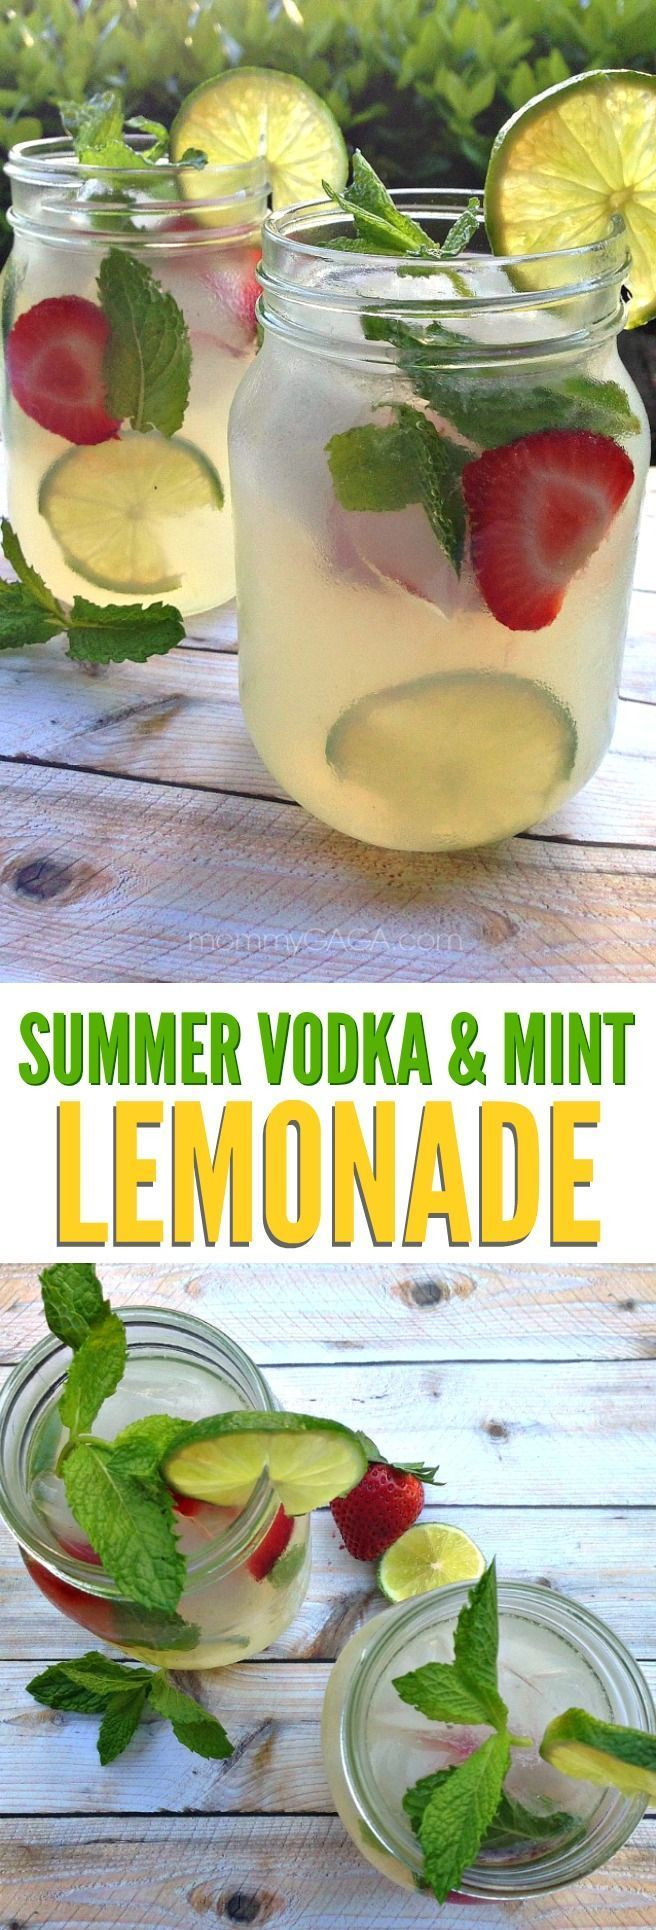 Refreshing summer vodka mint lemonade cocktail recipe the perfect adult drinks for entertaining on those warm summer days!